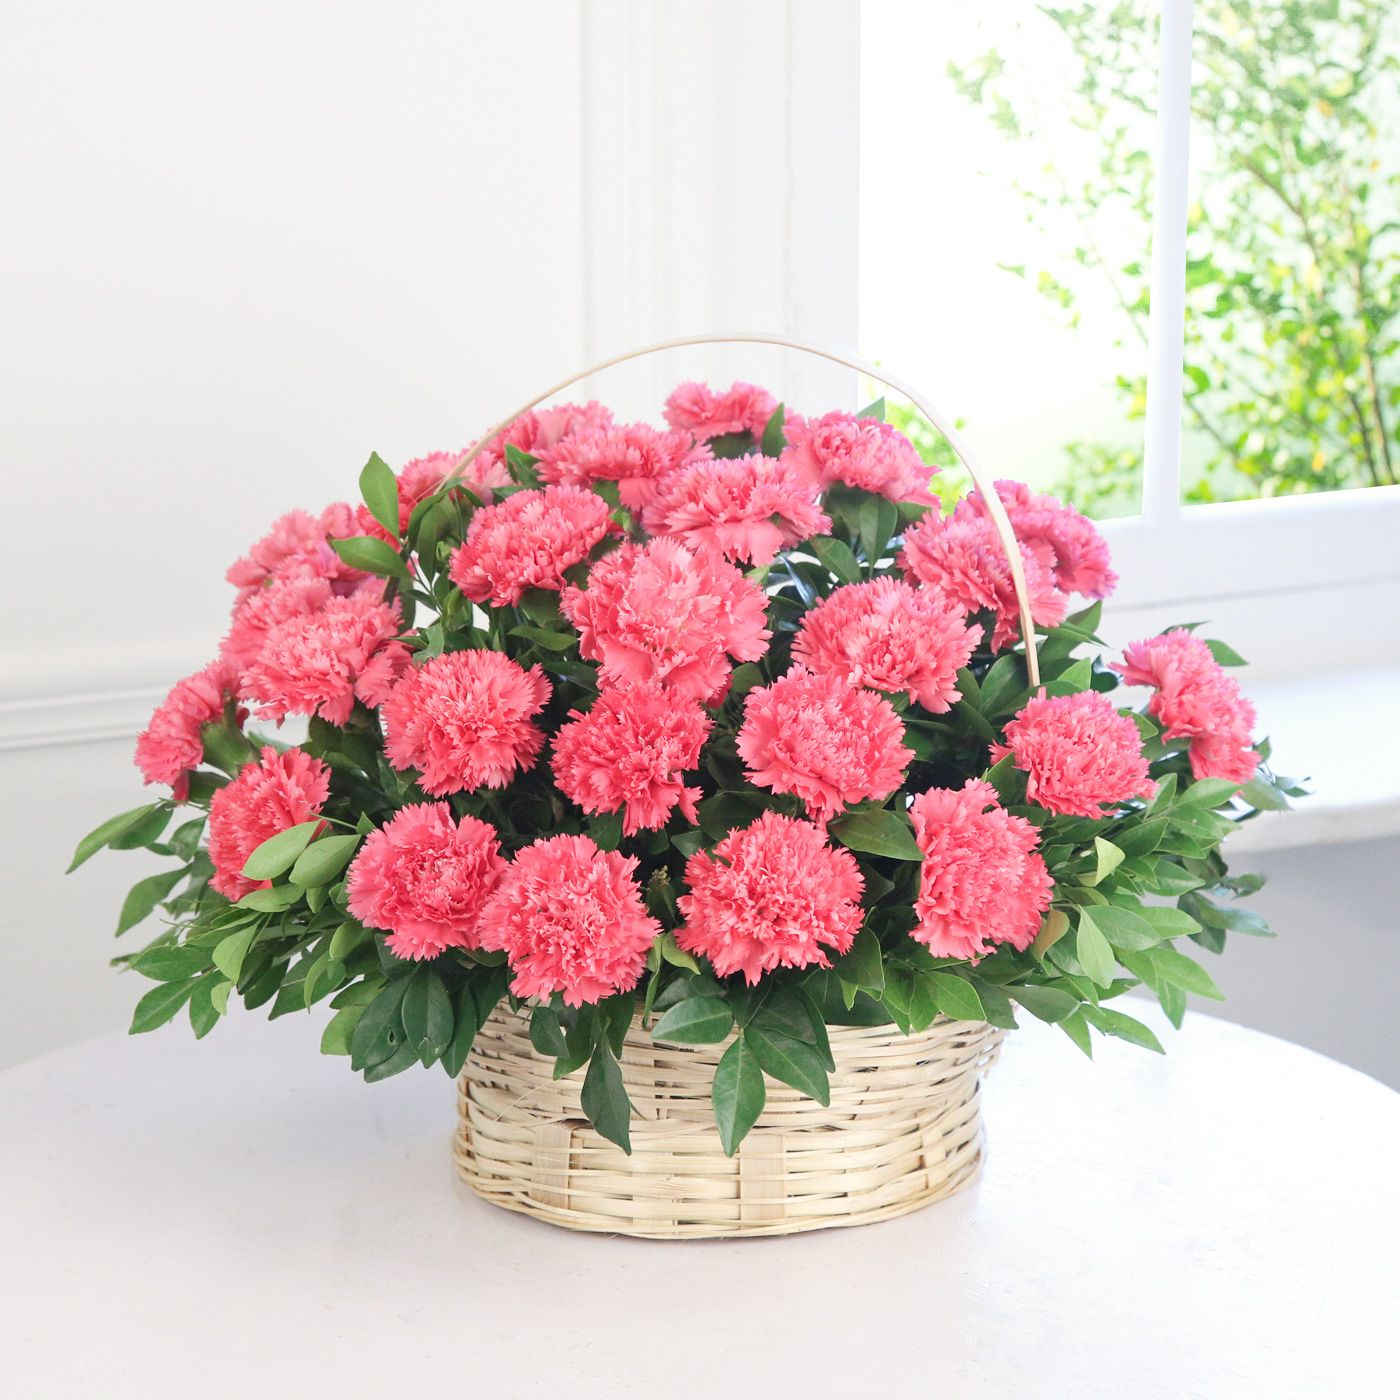 Send Flowers To Mumbai Flower Delivery In Mumbai In 3 Hours Flower Bouquet Delivery Flower Delivery Online Flower Delivery